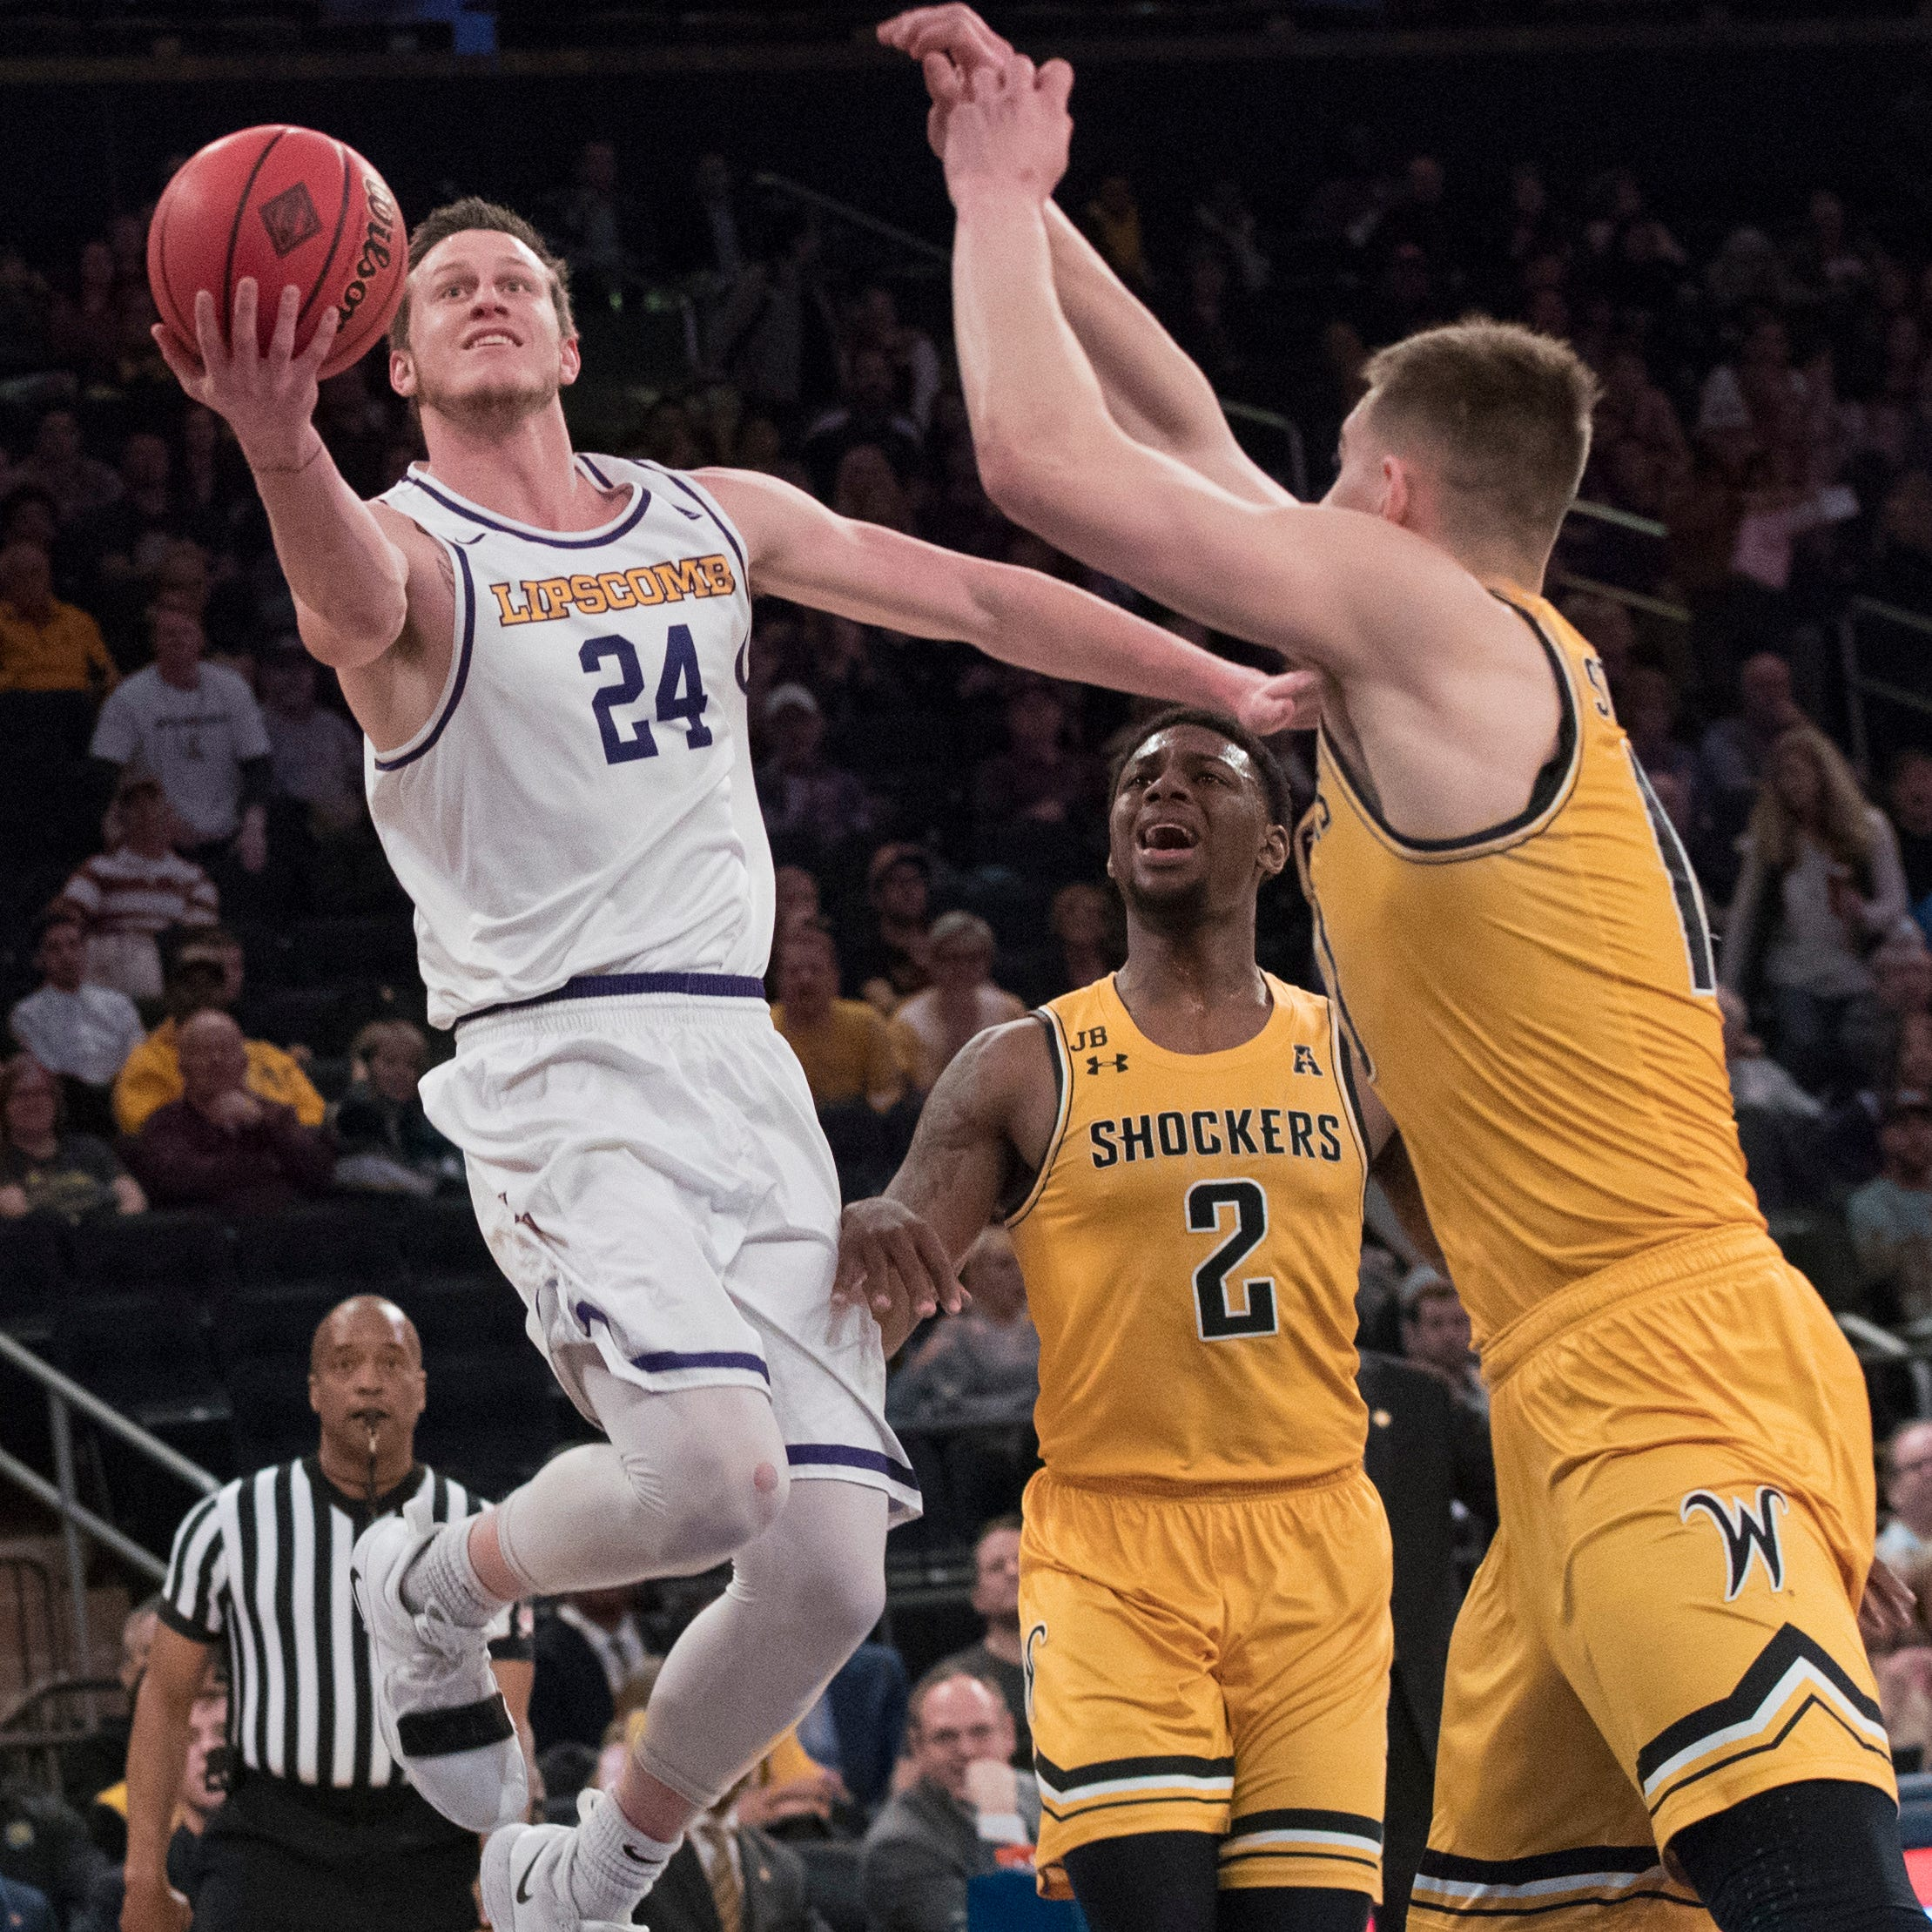 Lipscomb basketball shocks Wichita State to advance to NIT finals at Madison Square Garden